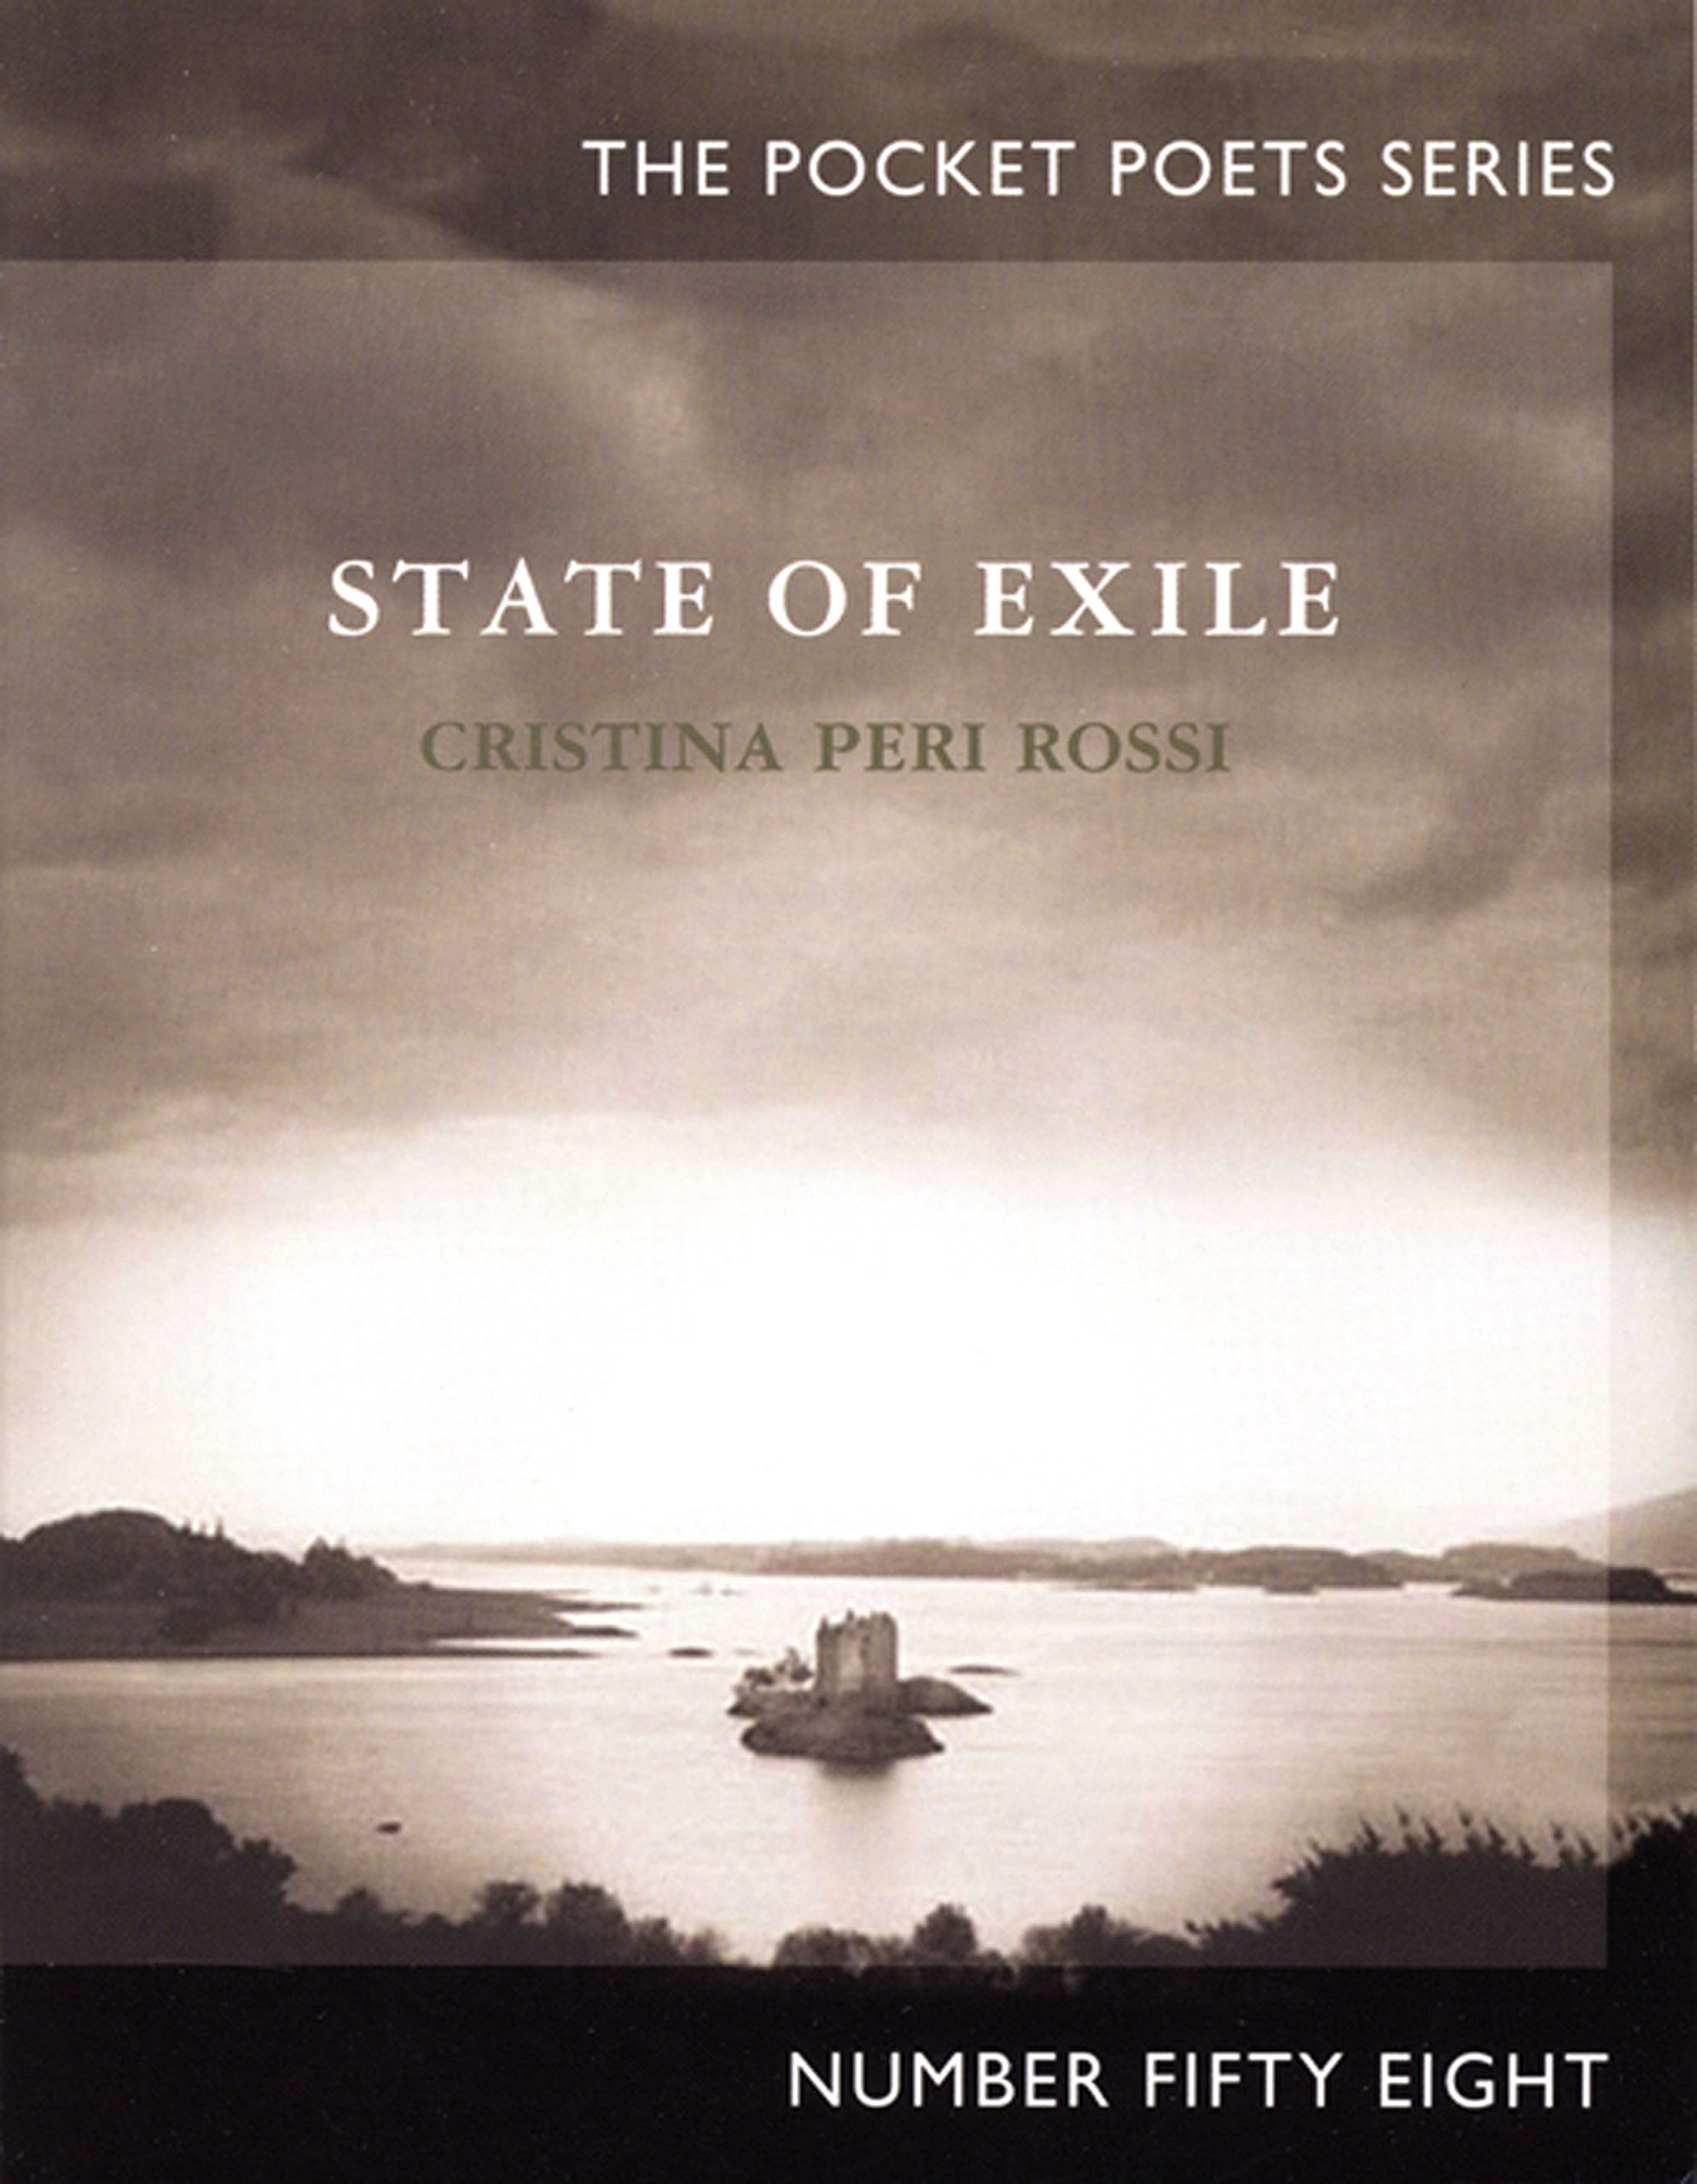 State of Exile (City Lights Pocket Poets Series) (Spanish Edition)